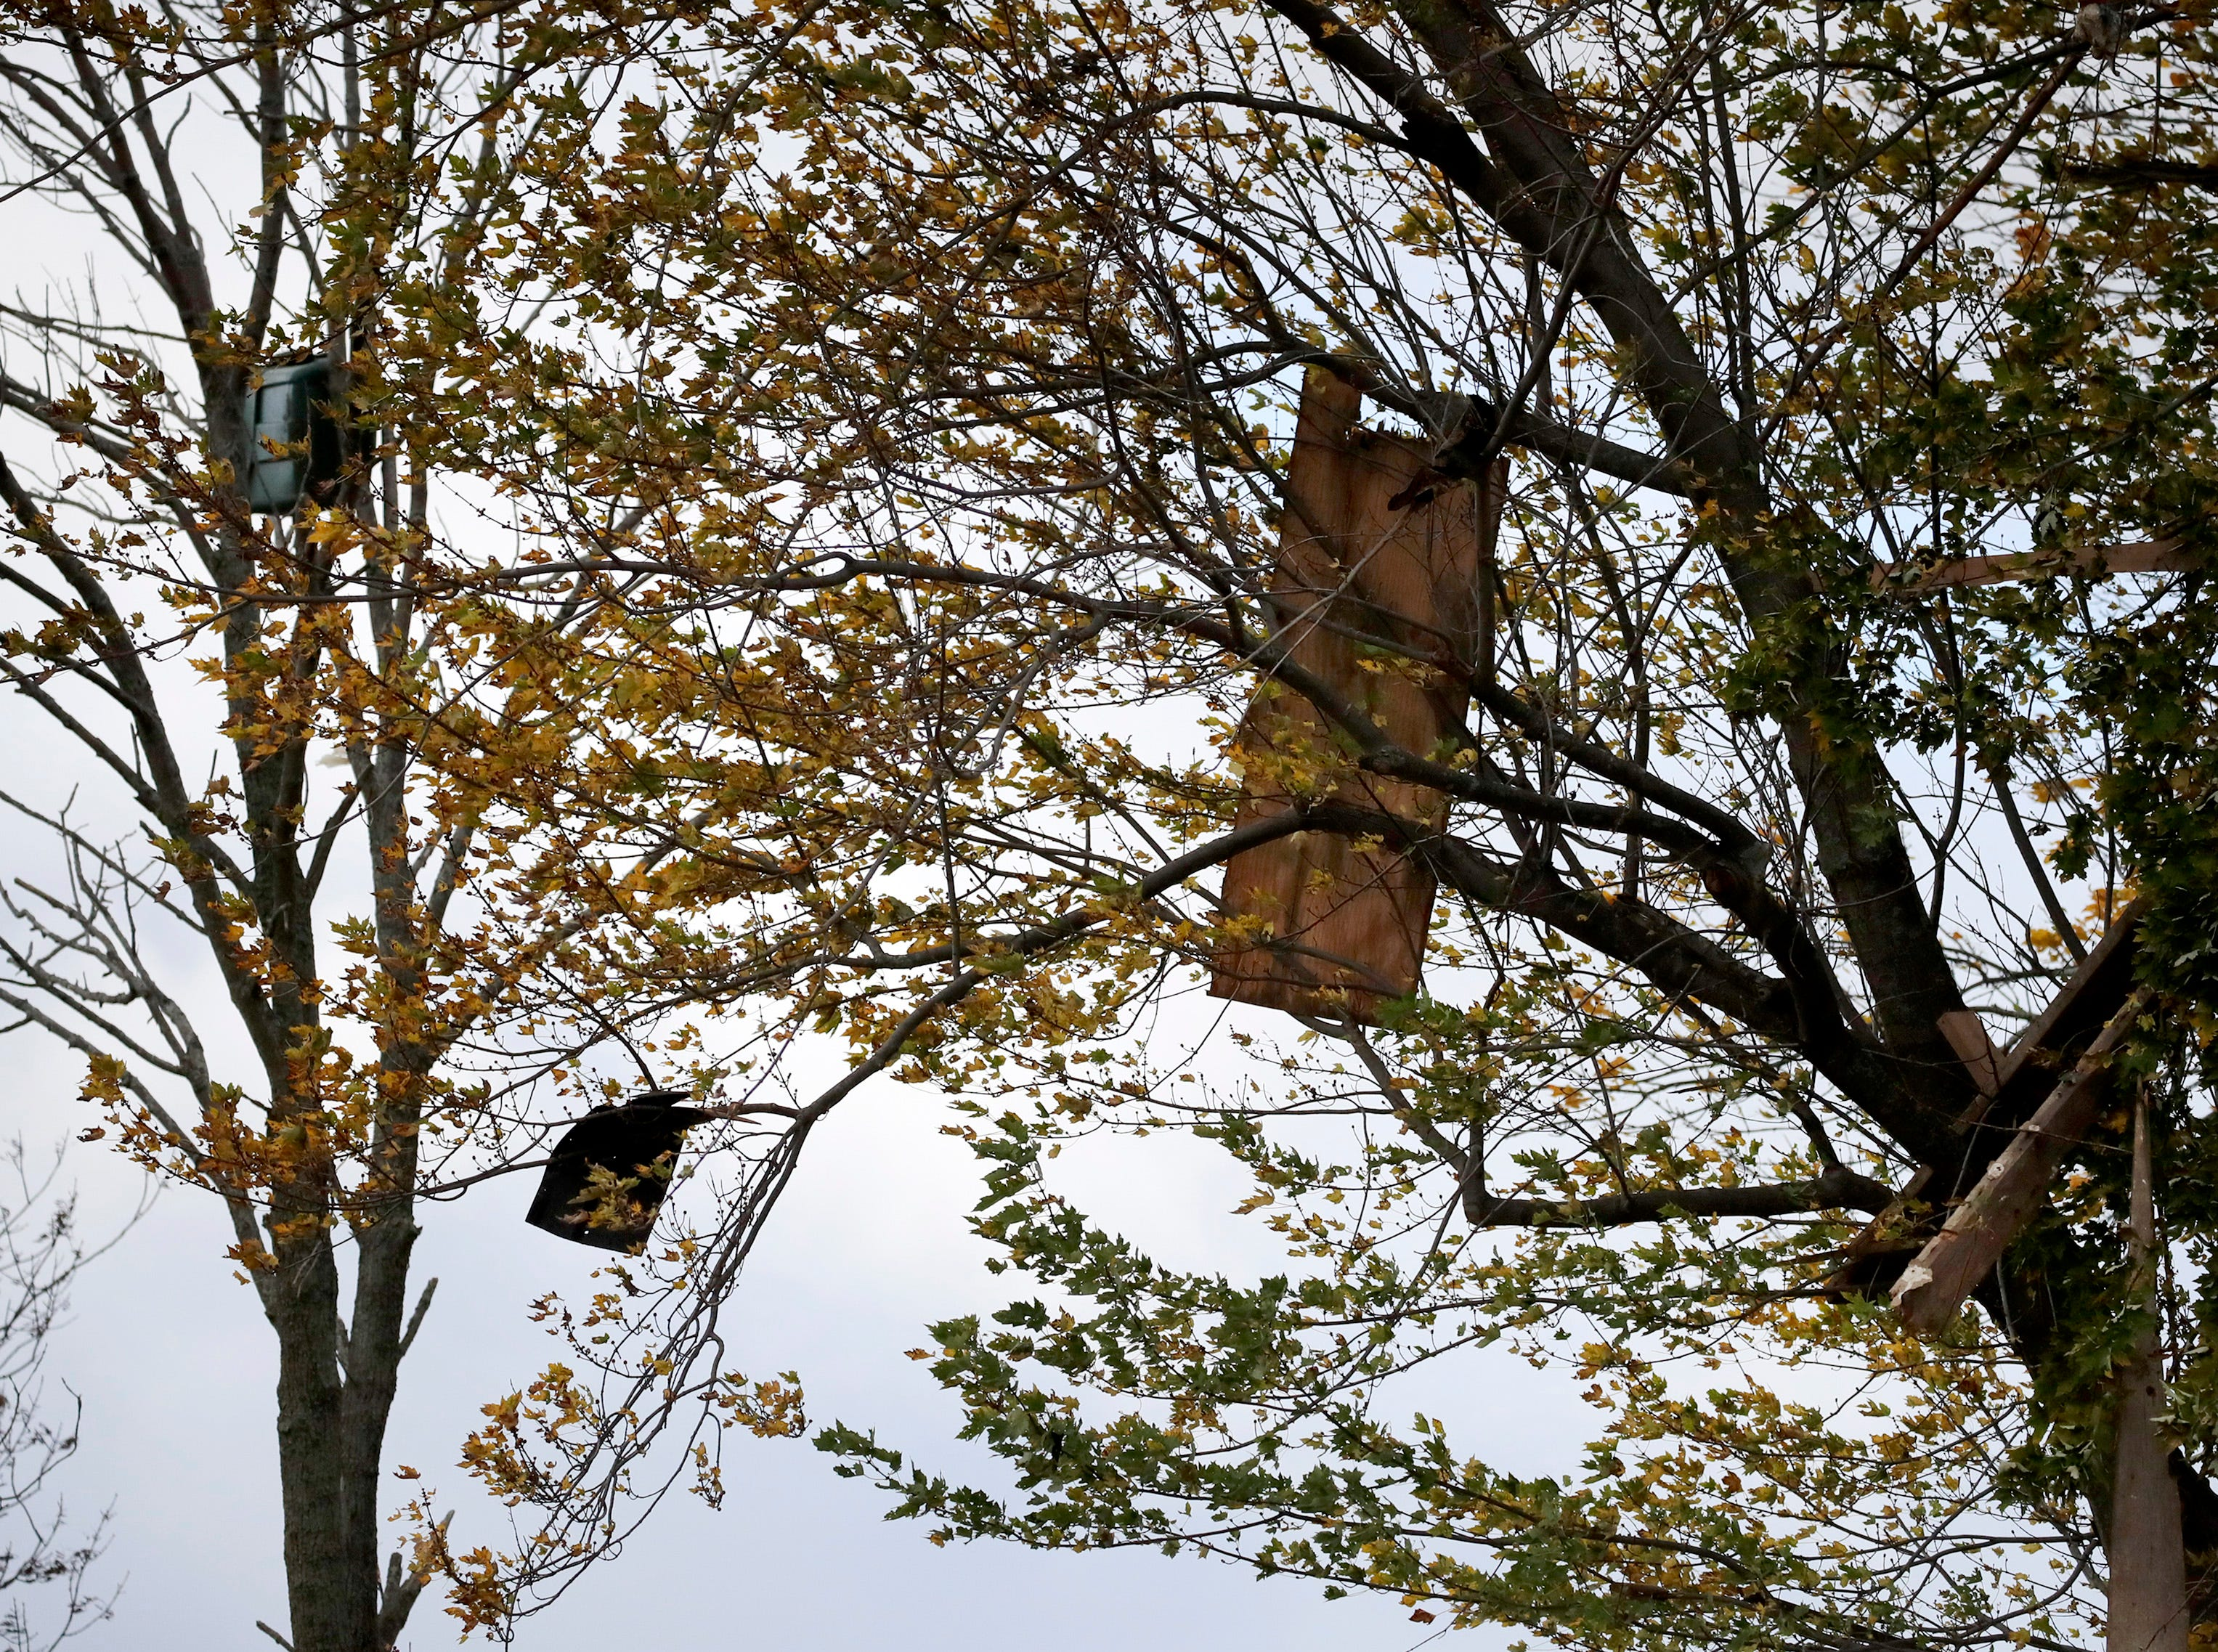 Debris from an explosion that destroyed one home and damaged neighboring properties hangs from the trees Thursday Oct. 11, 2018, in Harrison, Wis.